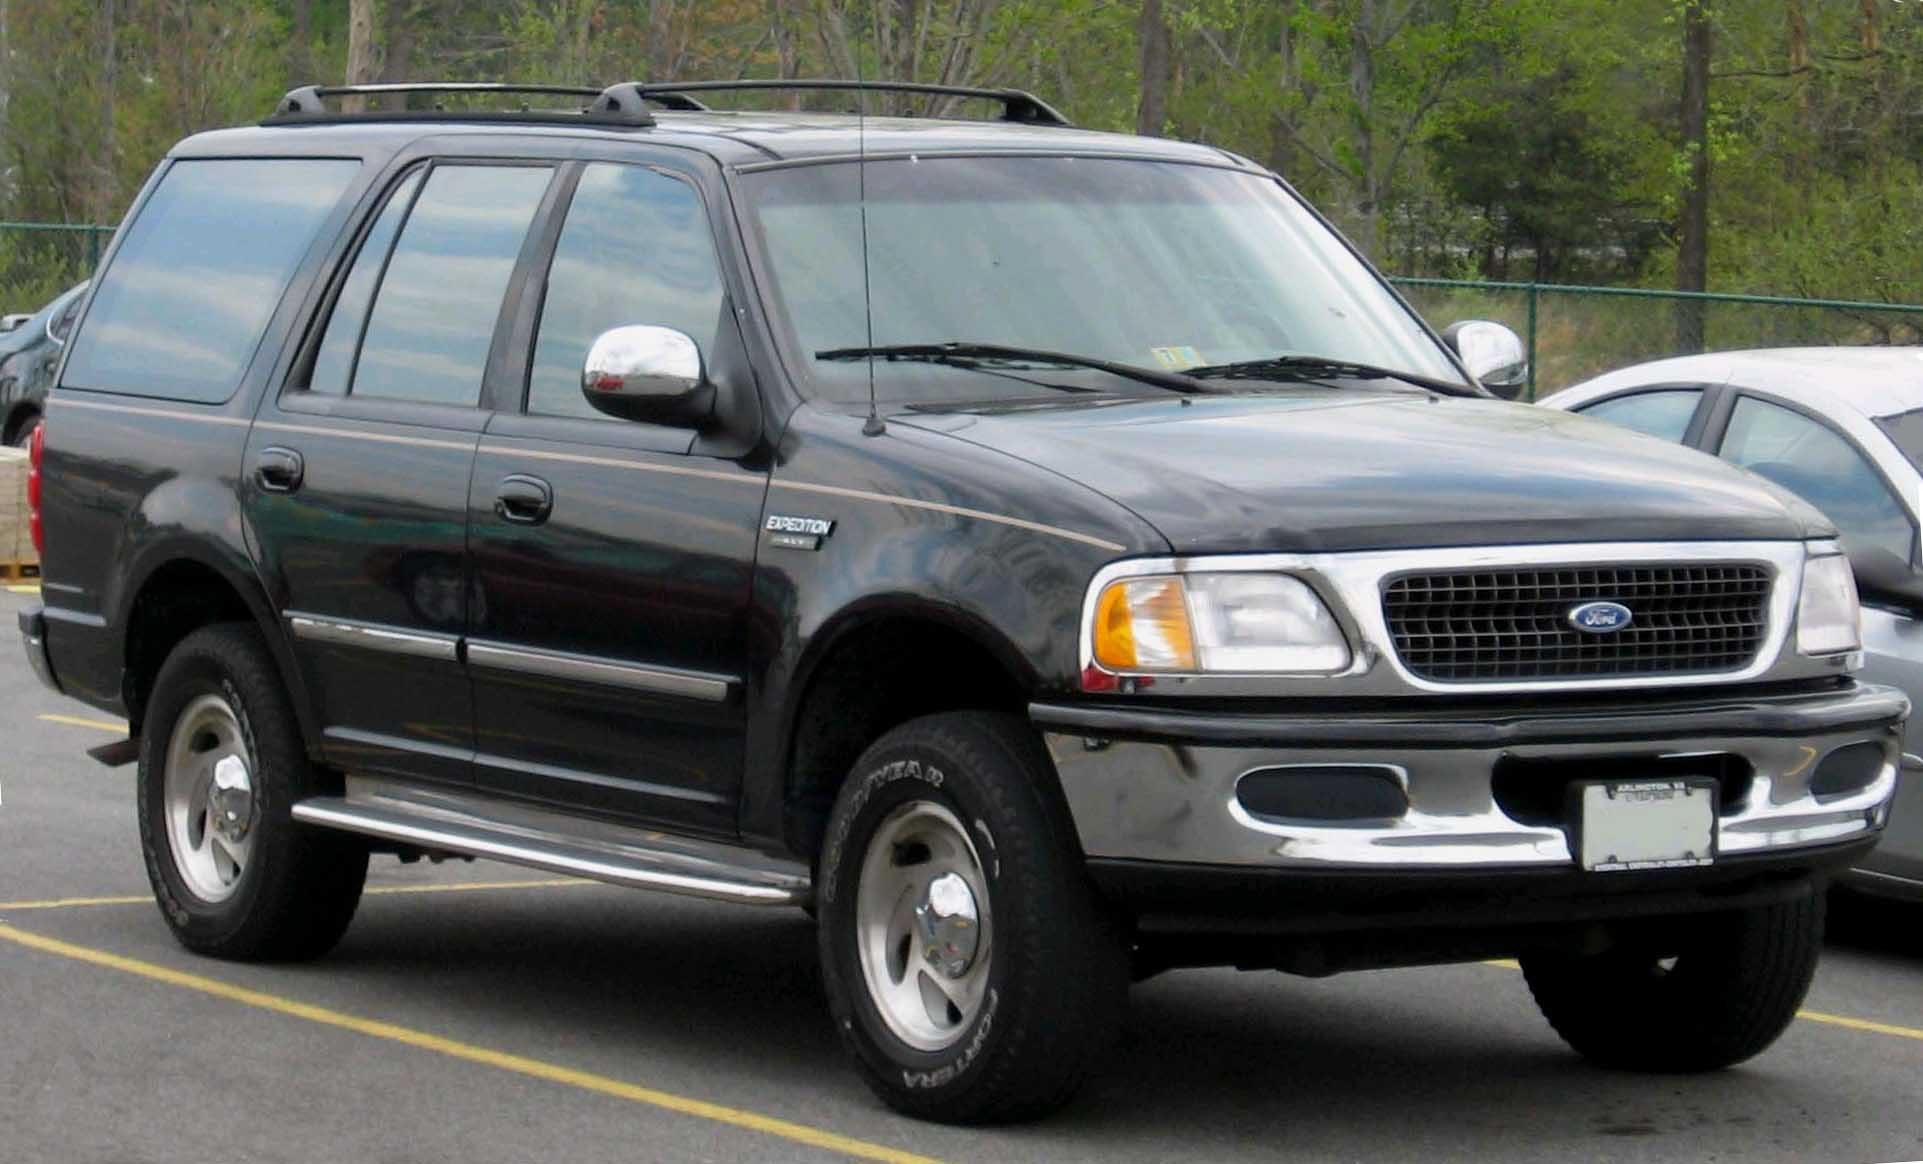 Ford Expedition | Tractor & Construction Plant Wiki | FANDOM powered ...